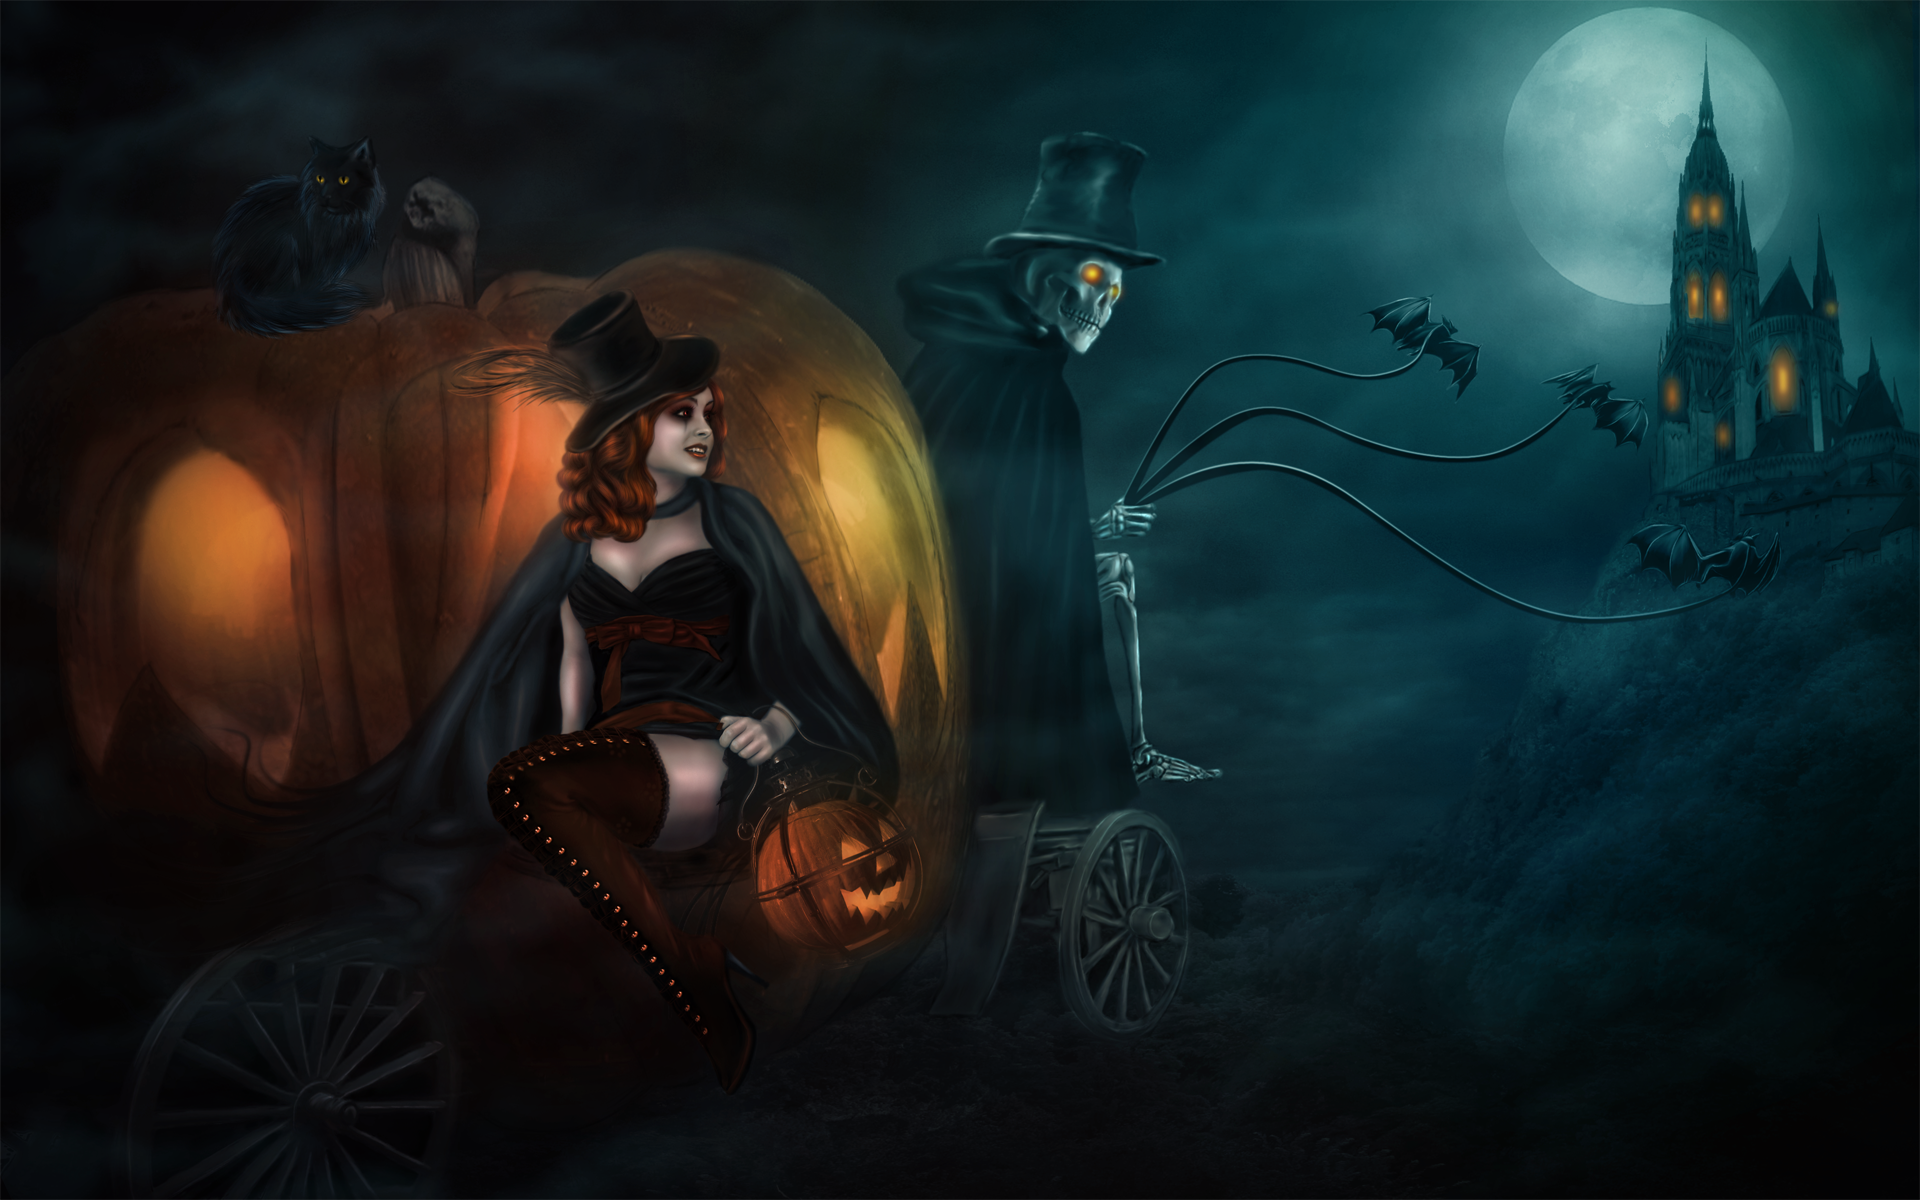 Halloween Witch Wallpaper Hd ~ Sdeerwallpaper